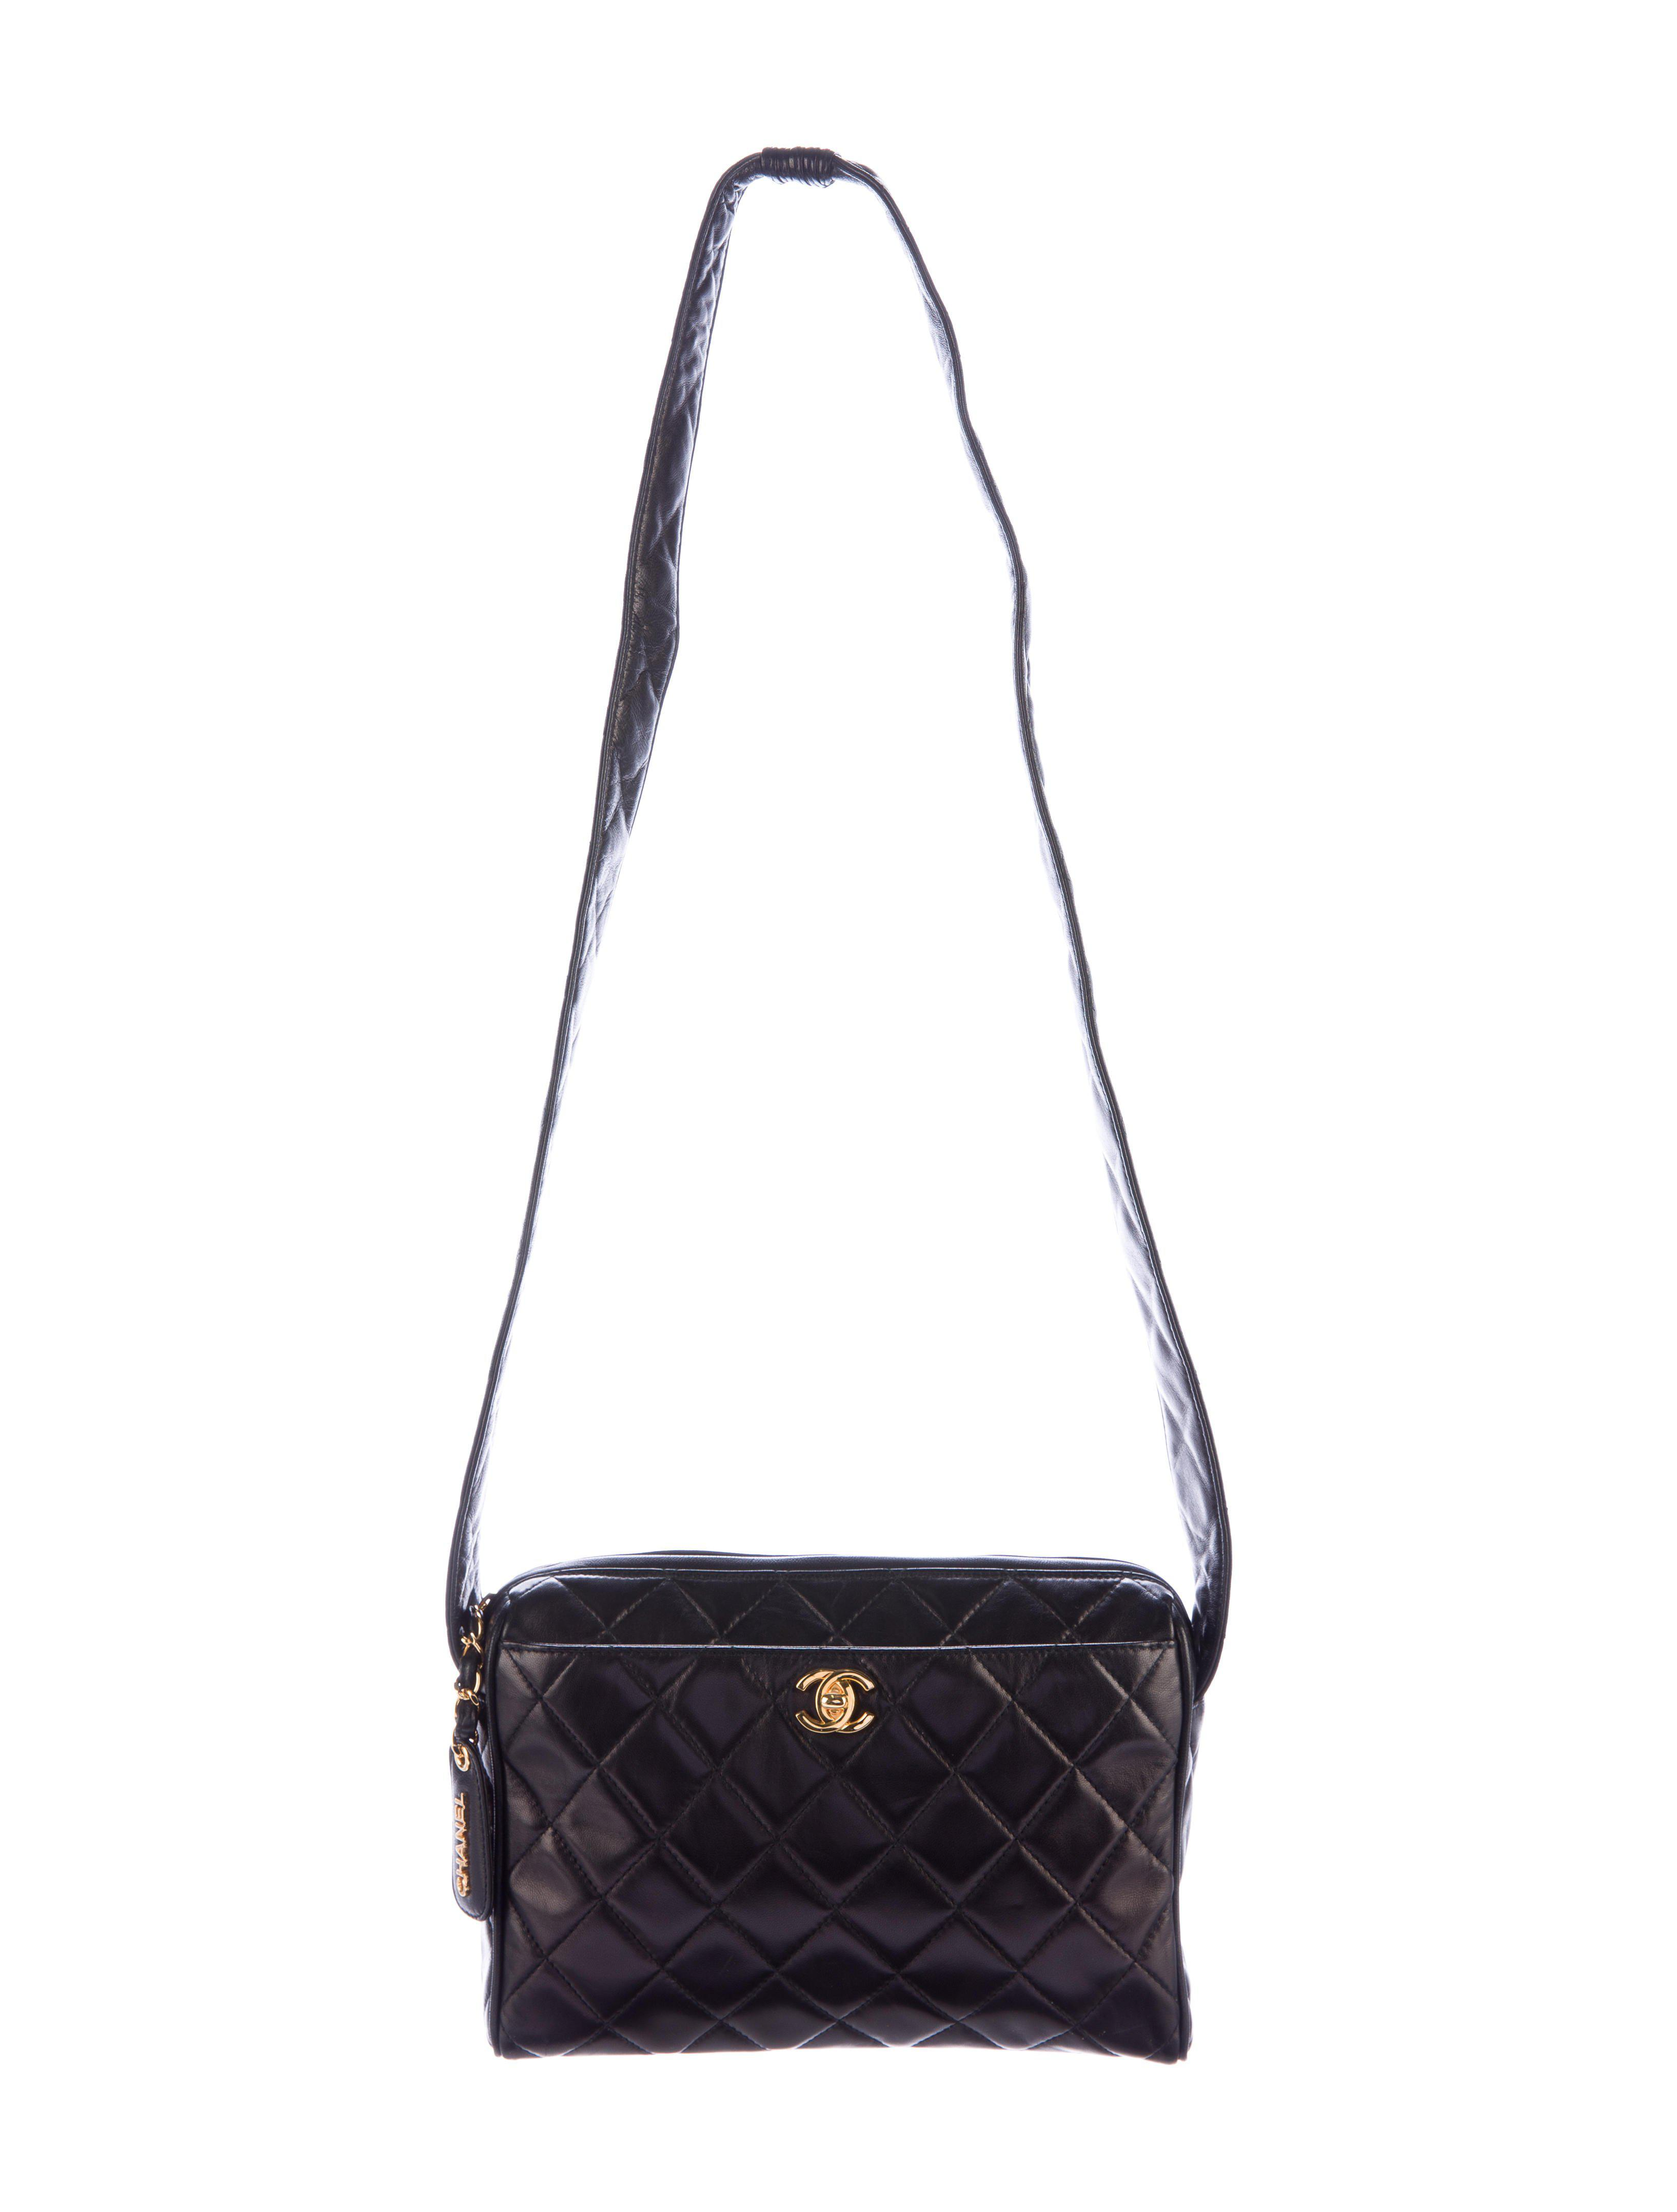 a8319f1ab3c5 Lyst - Chanel Lambskin Quilted Messenger Bag Black in Metallic